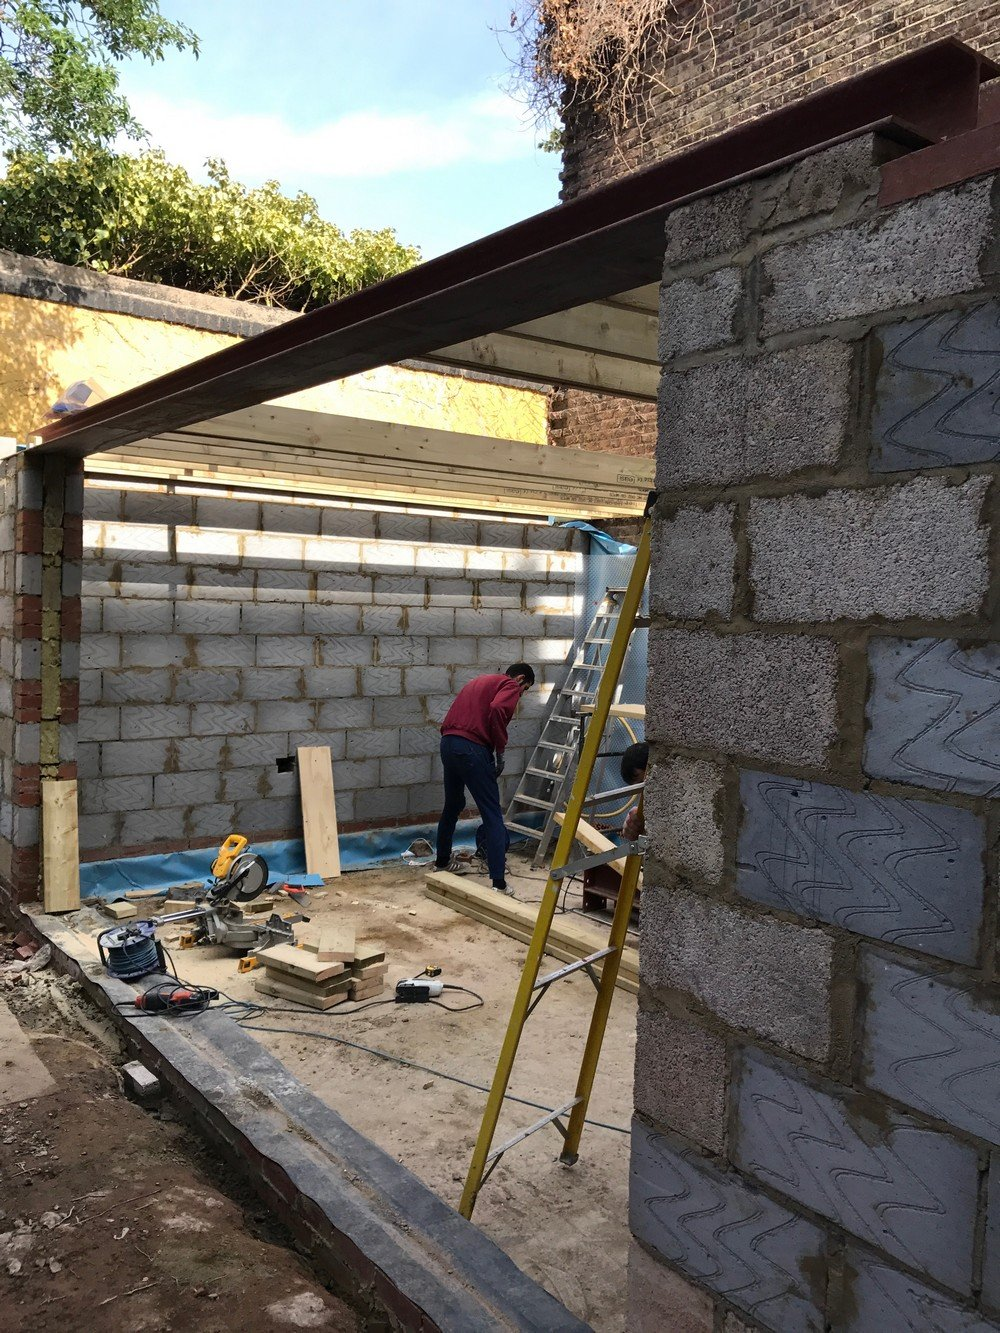 W12 – Gut and Re Build, Tanking, Steels, Walls, Repipe, Re Wire, Bathrooms, Kitchen, Utility 40